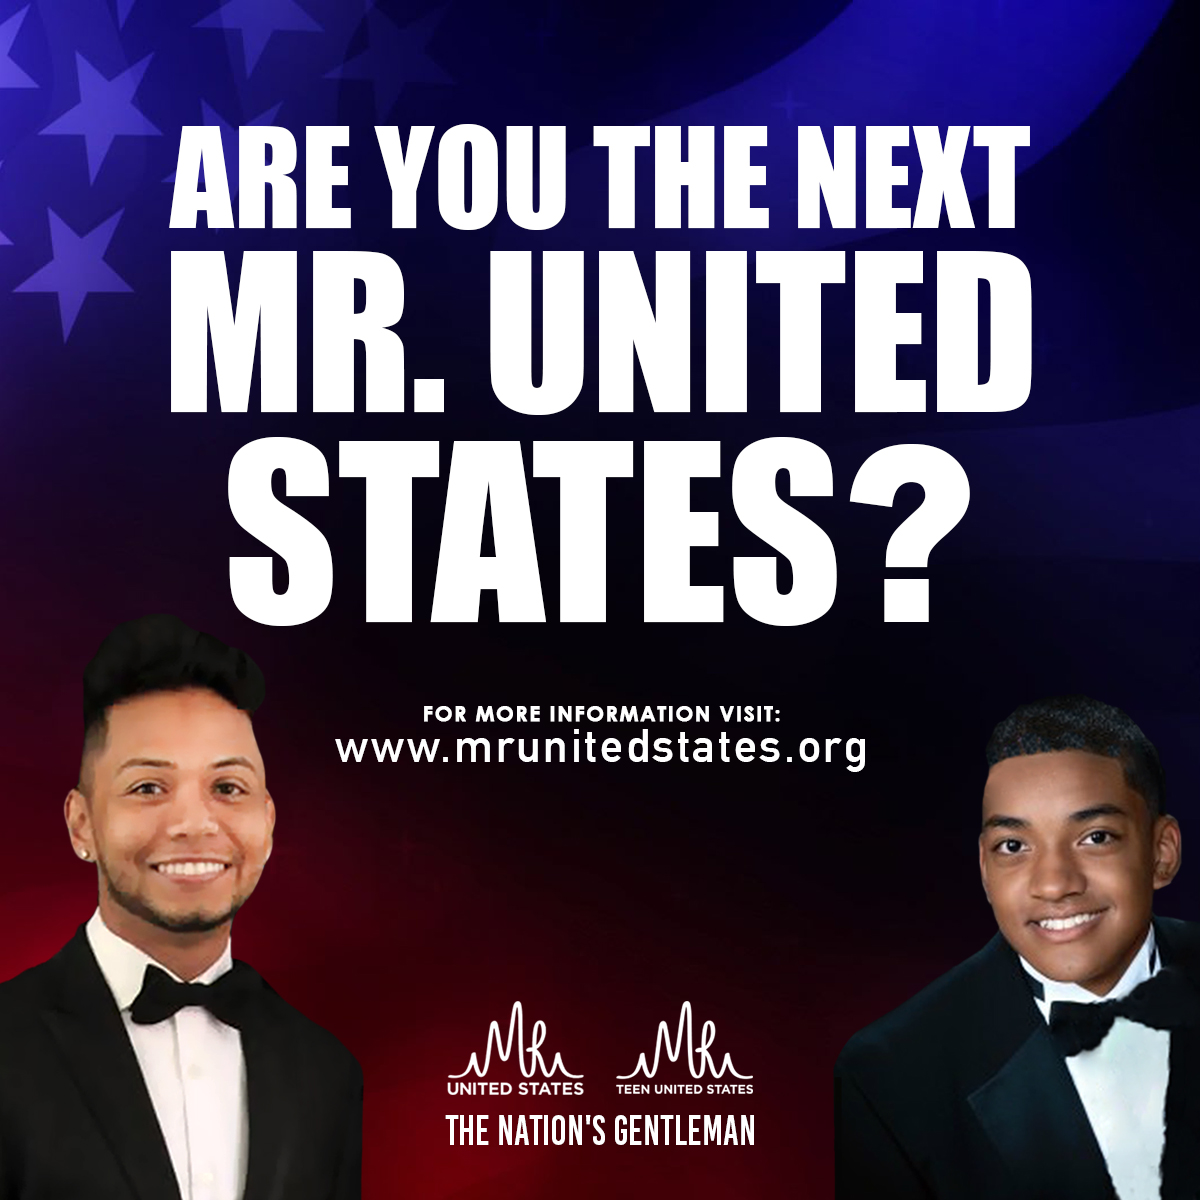 MUS - Are You The Next 2018.jpg